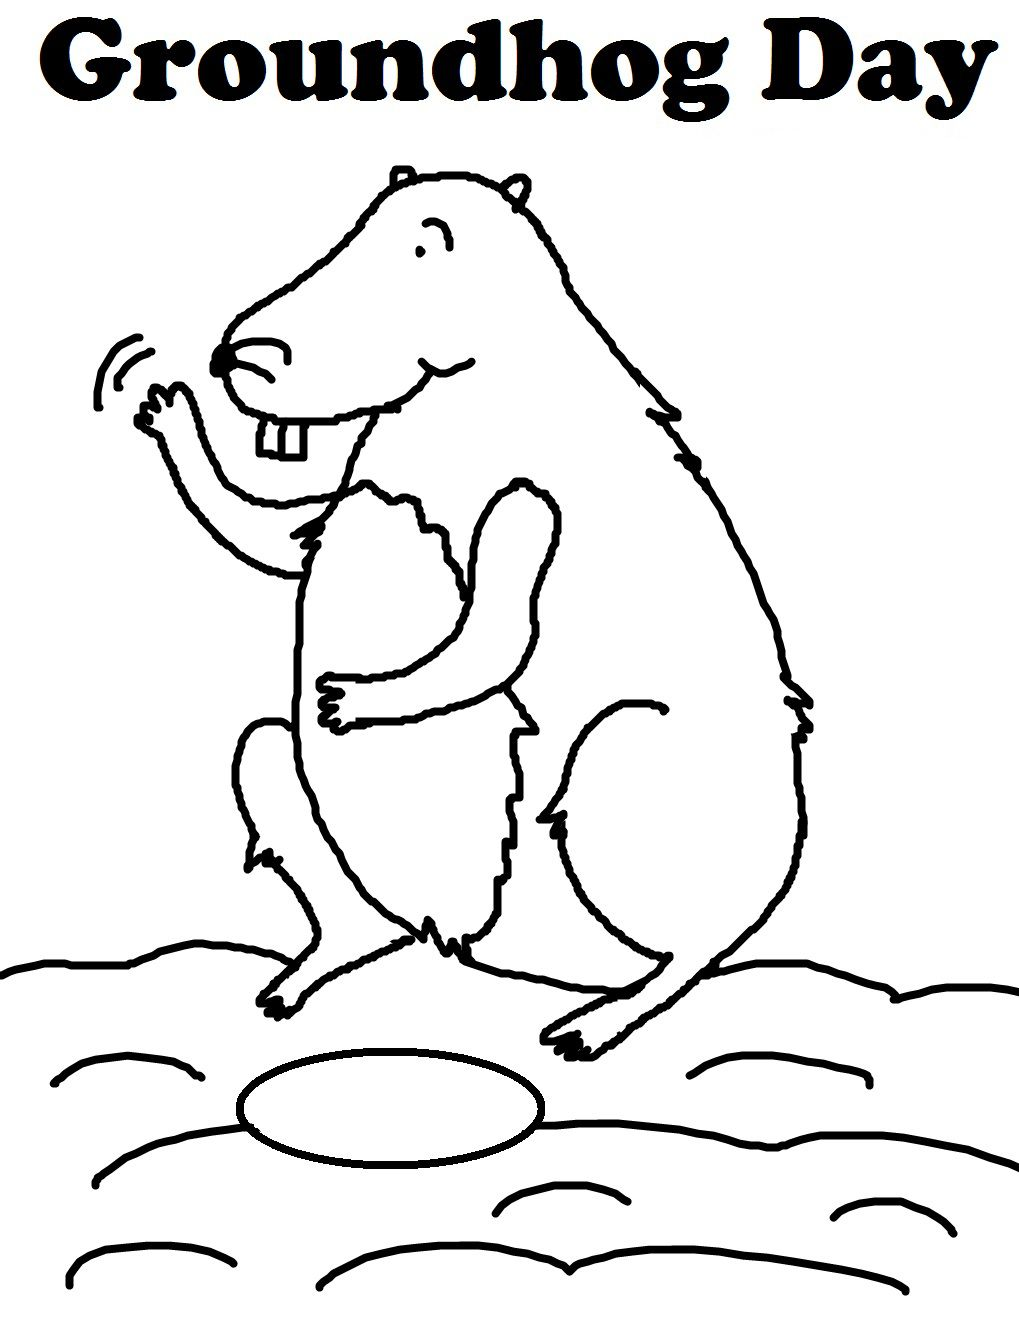 Groundhog Day Worksheets Best Coloring Pages For Kids Mermaid Coloring Pages Coloring Pages Bird Coloring Pages